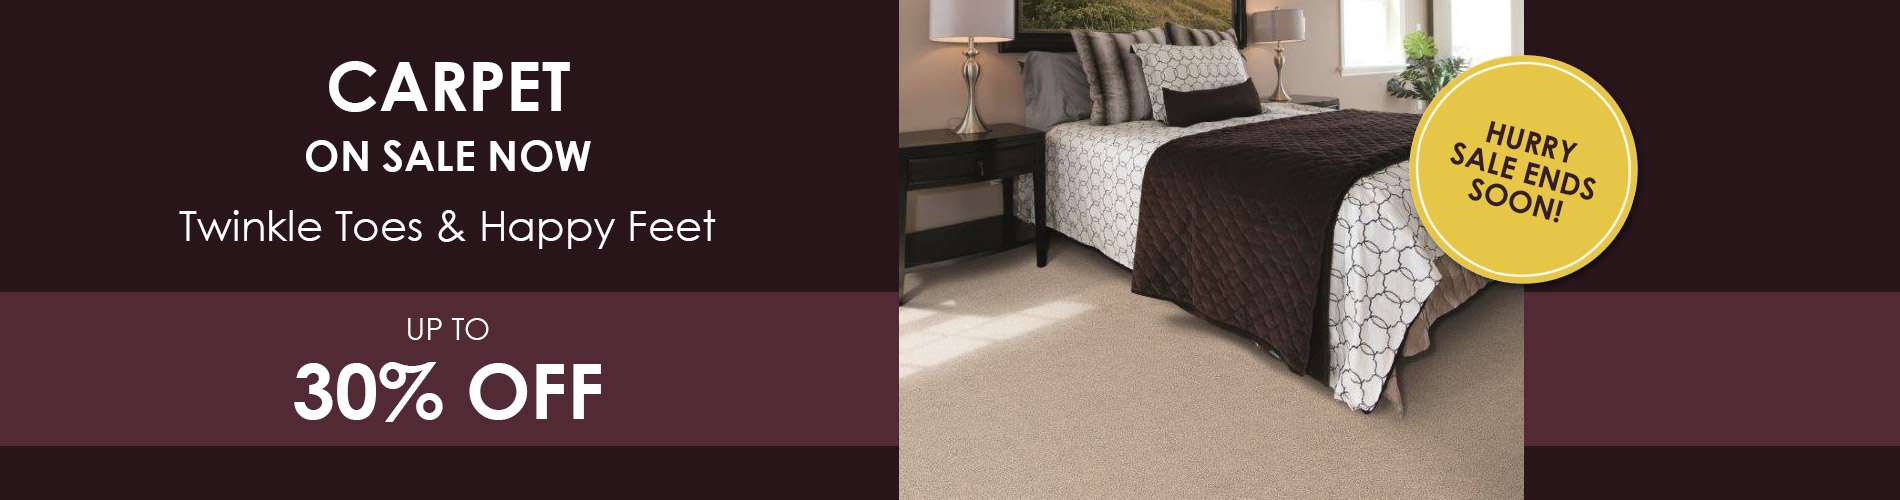 Carpet On Sale Now - Twinkle Toes & Happy Feet - up to 30% Off